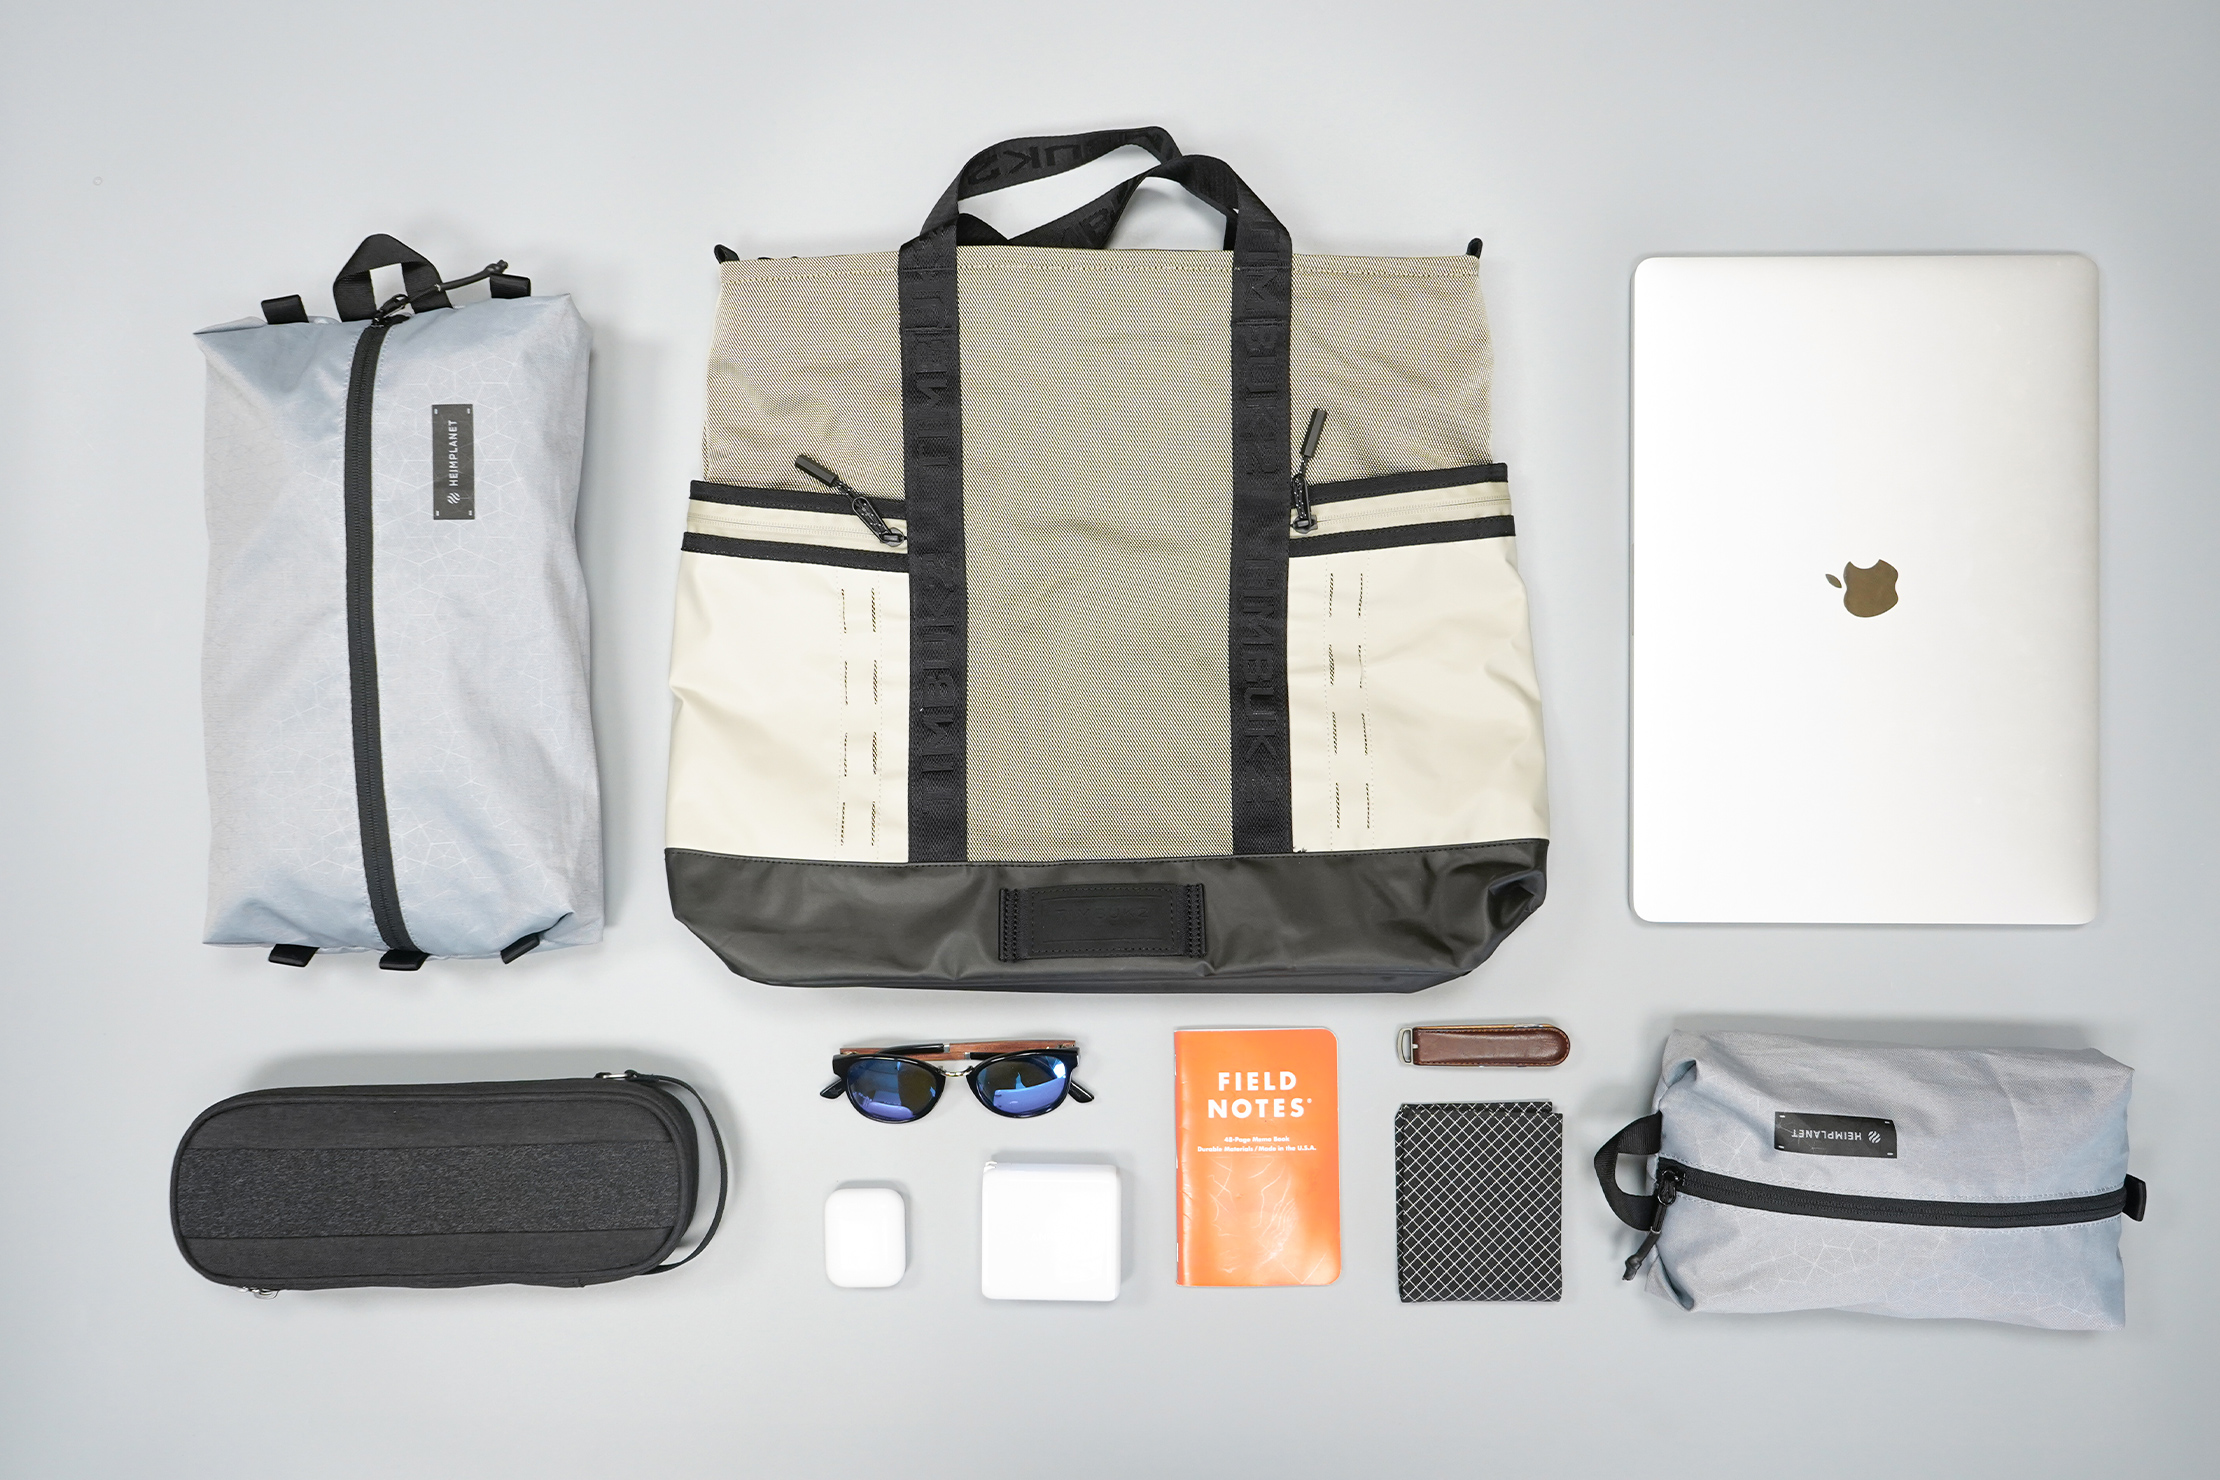 Timbuk2 Tech Tote   Fully-packed load laid out